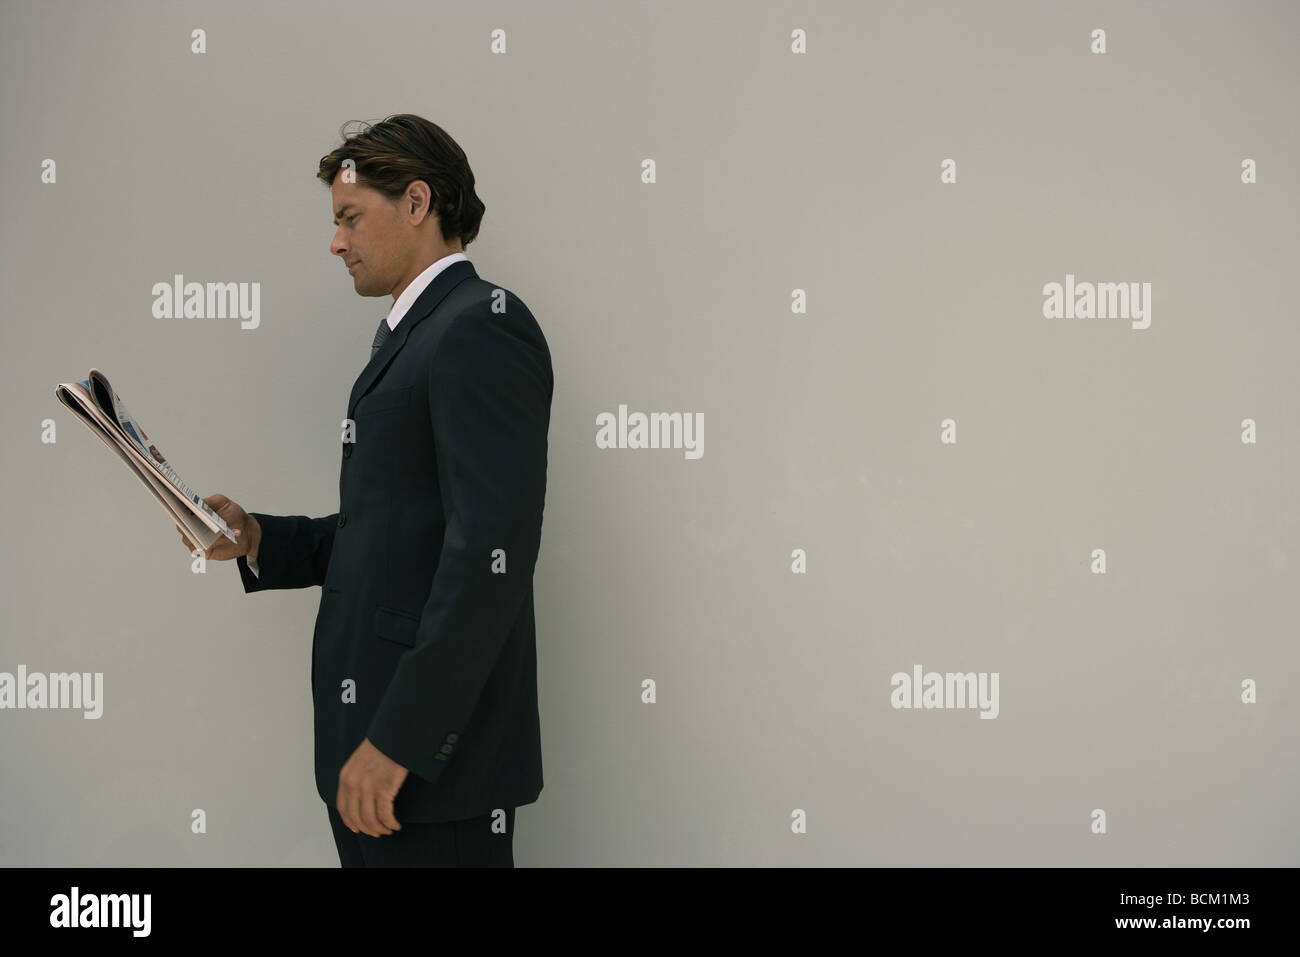 Businessman standing, lisant le journal, side view Photo Stock